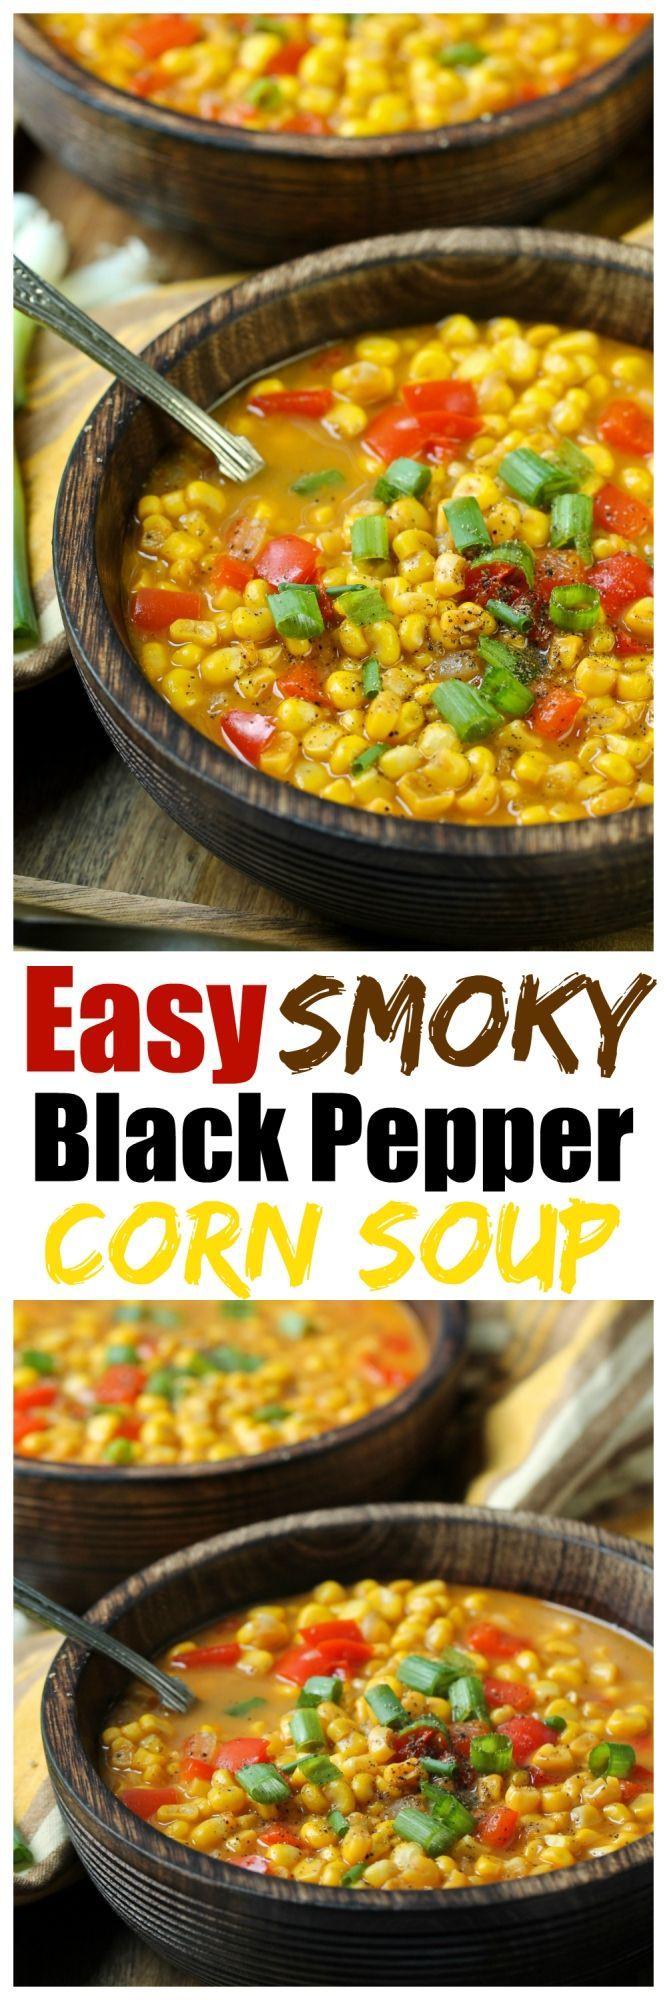 An incredibly easy and quick Black Pepper Corn Soup is full of sweet corn, sweet onion and red bell peppers and comes together in about 40 minutes. A vegan corn soup that has a touch of creamy from coconut milk and the perfect amount of spice from a good dose black pepper and chili powder.